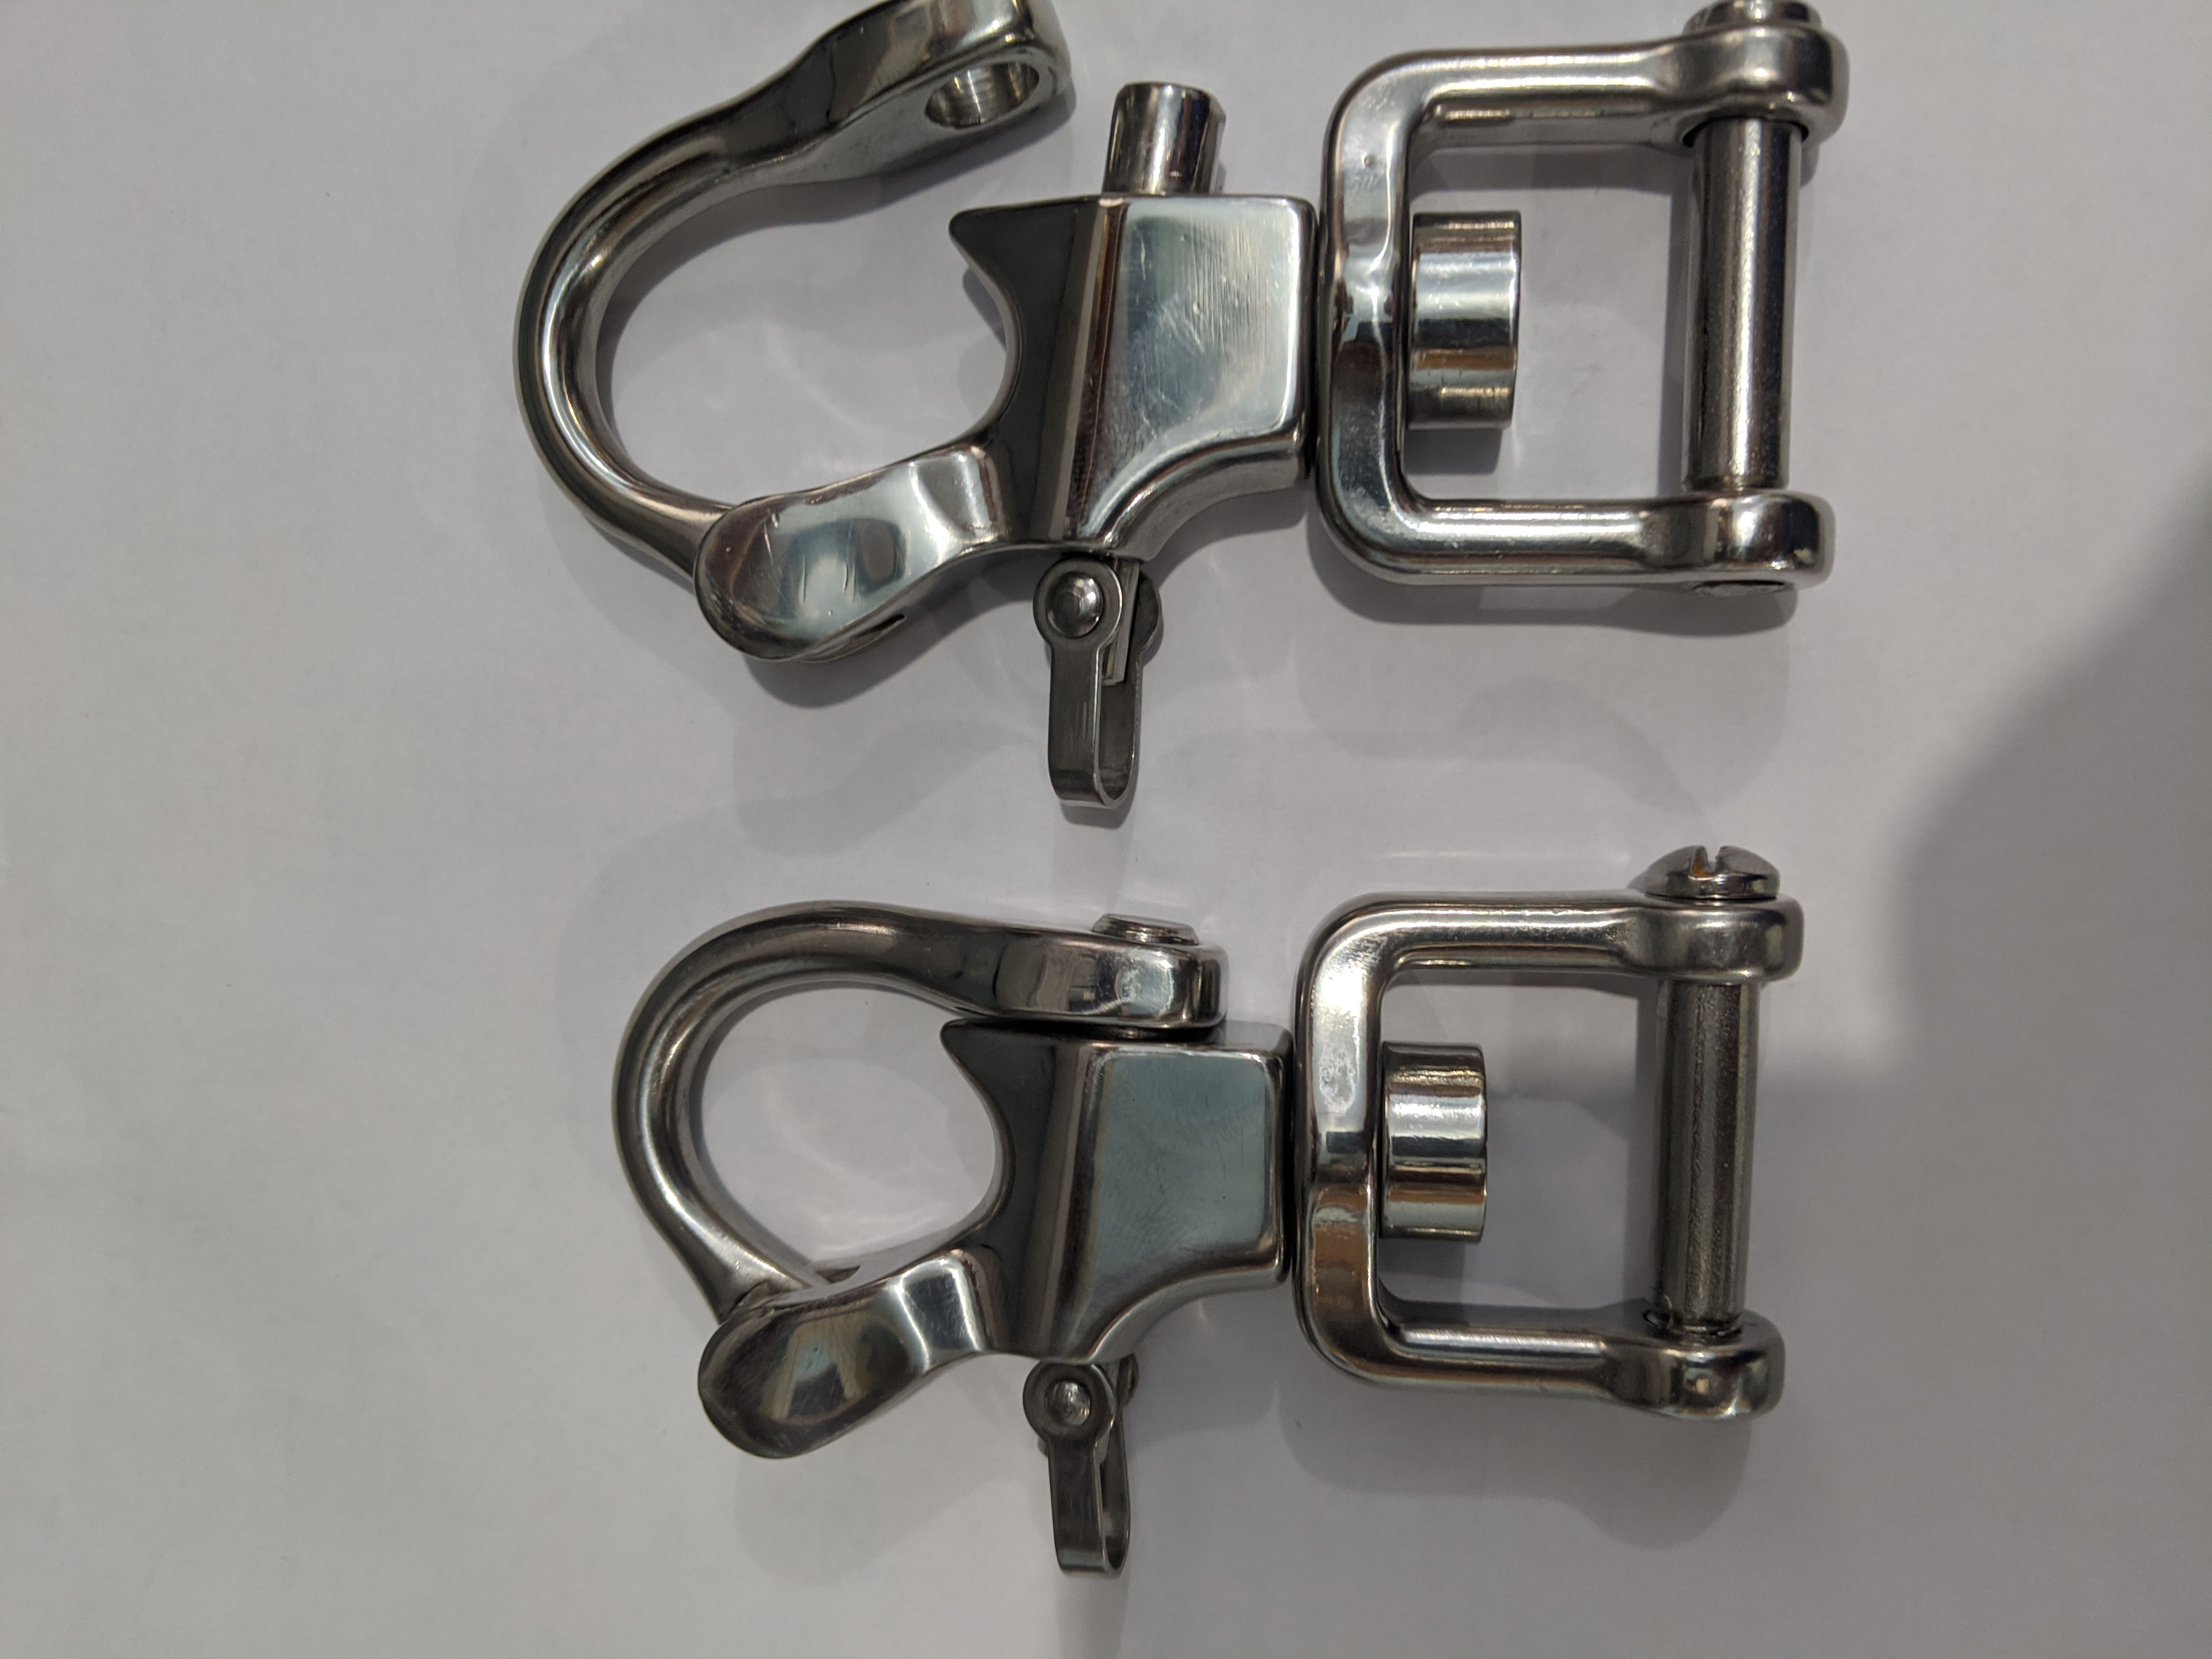 253 Shackle Snaps